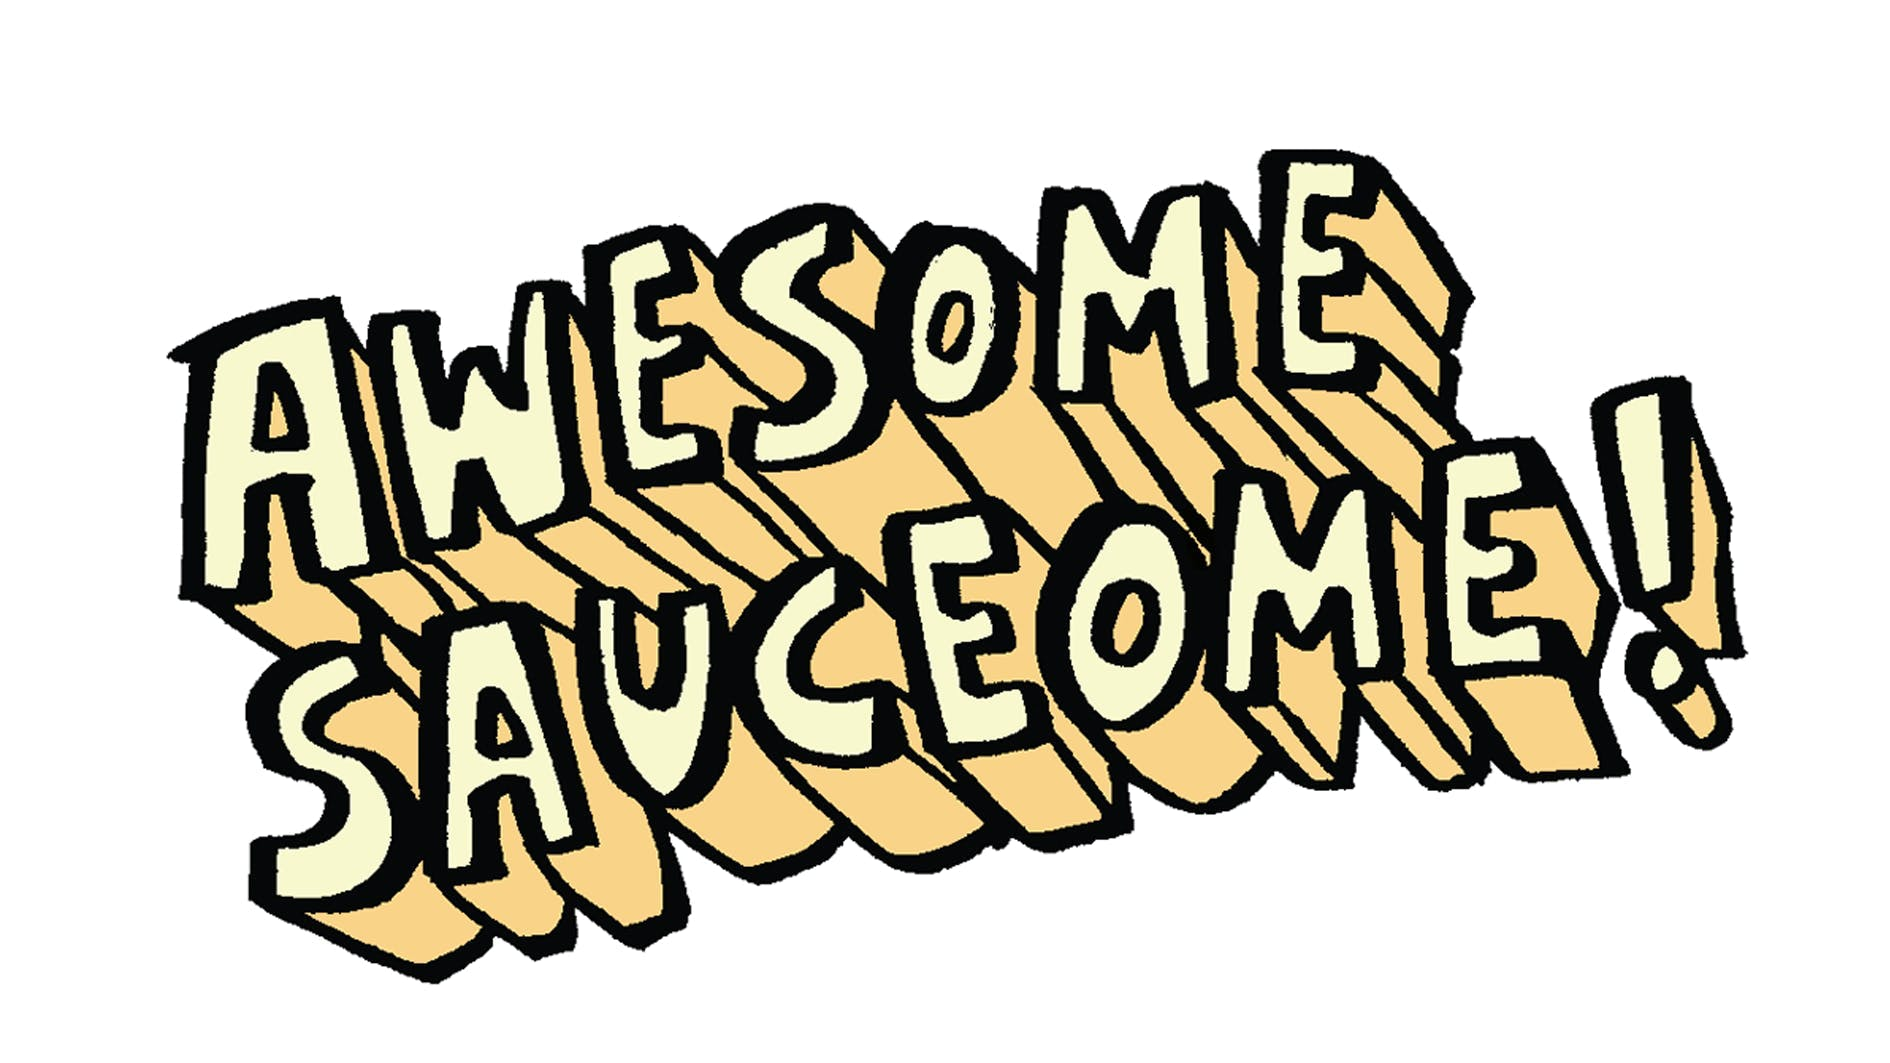 Awesome Sauceome